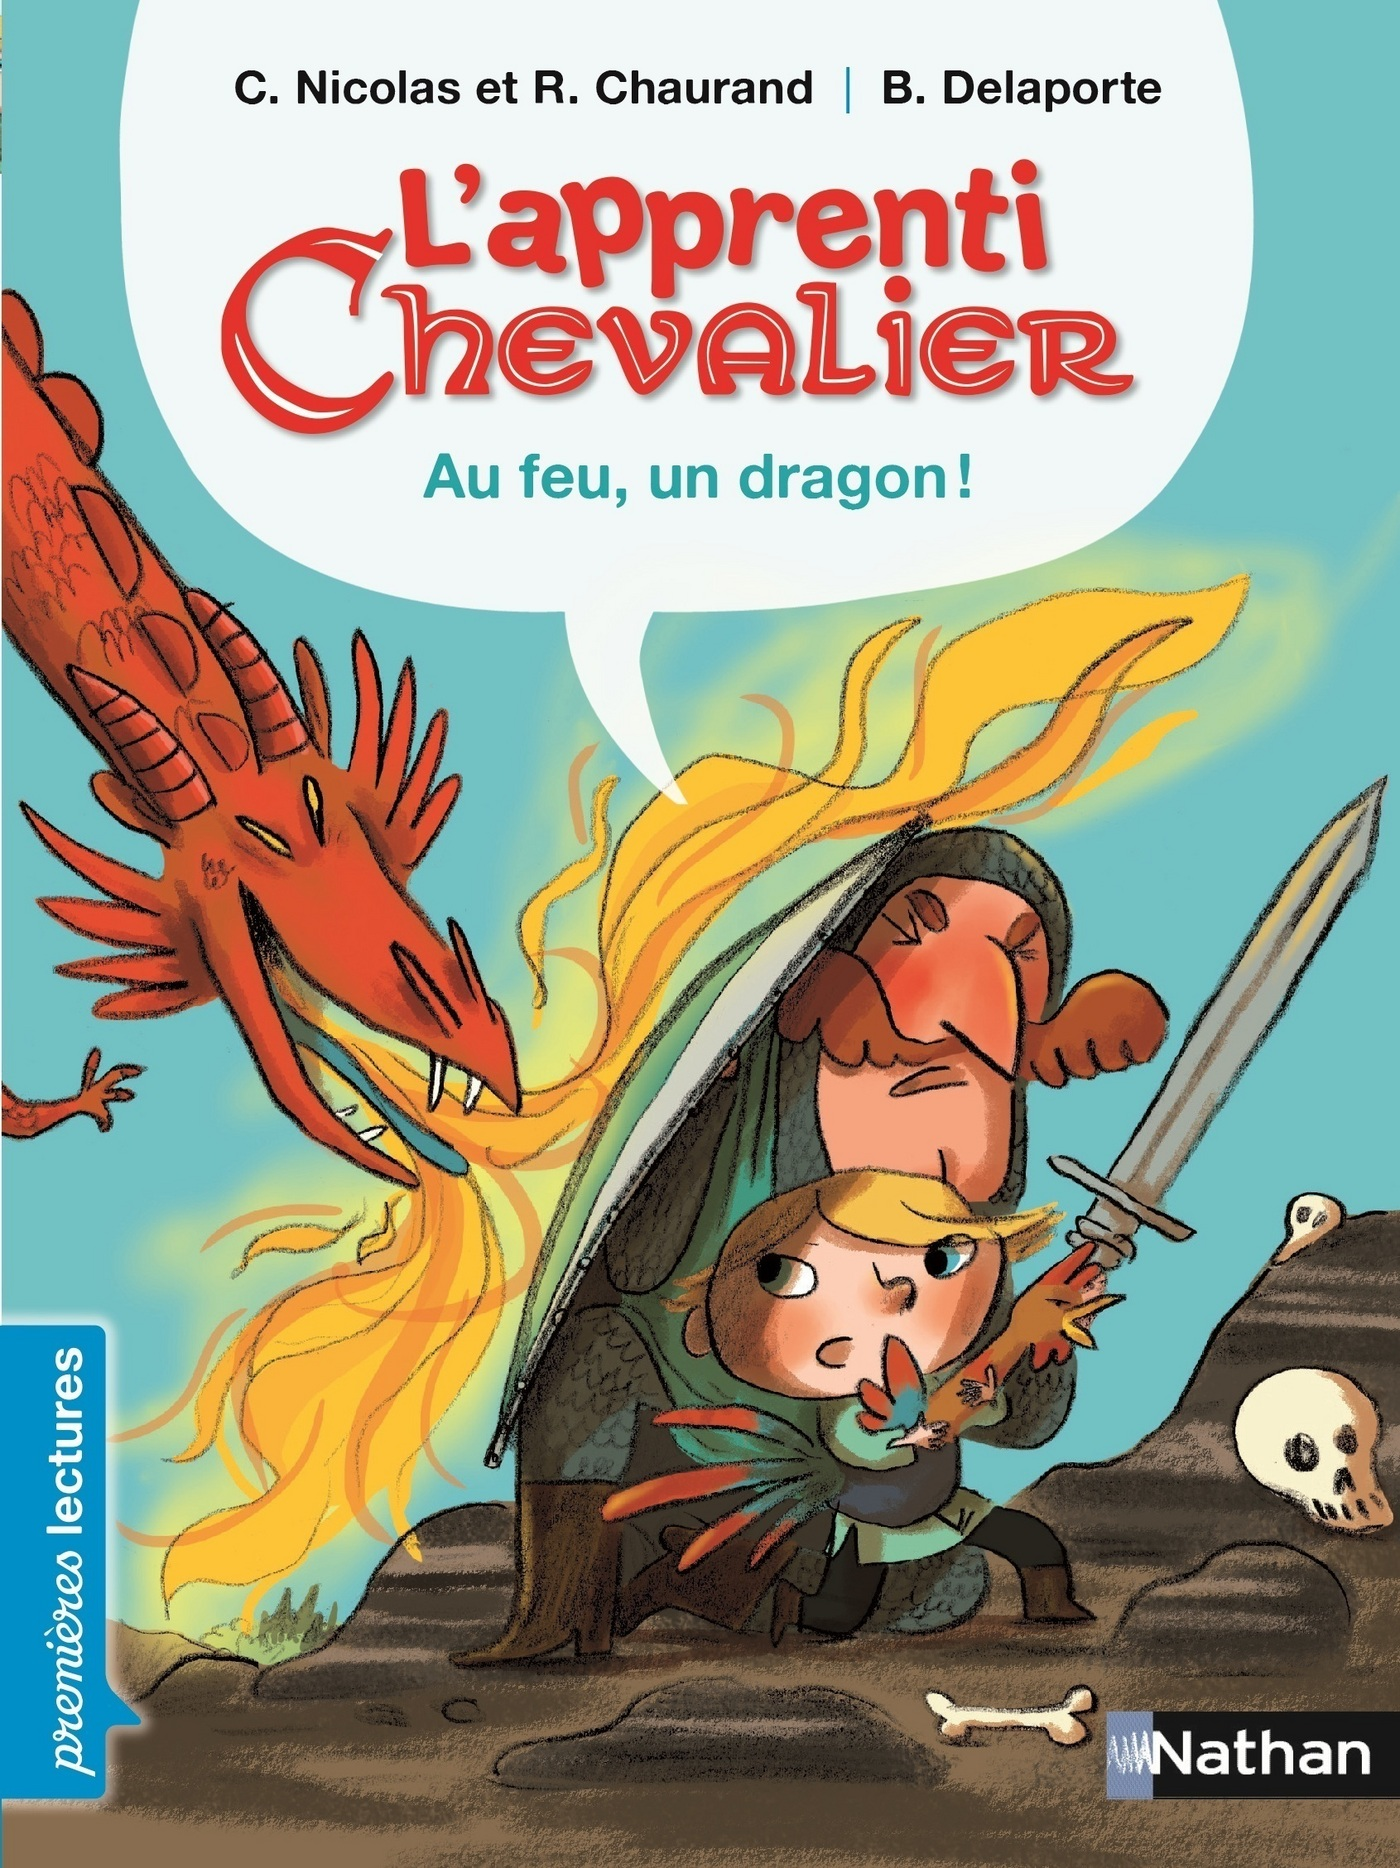 Au feu, un dragon !